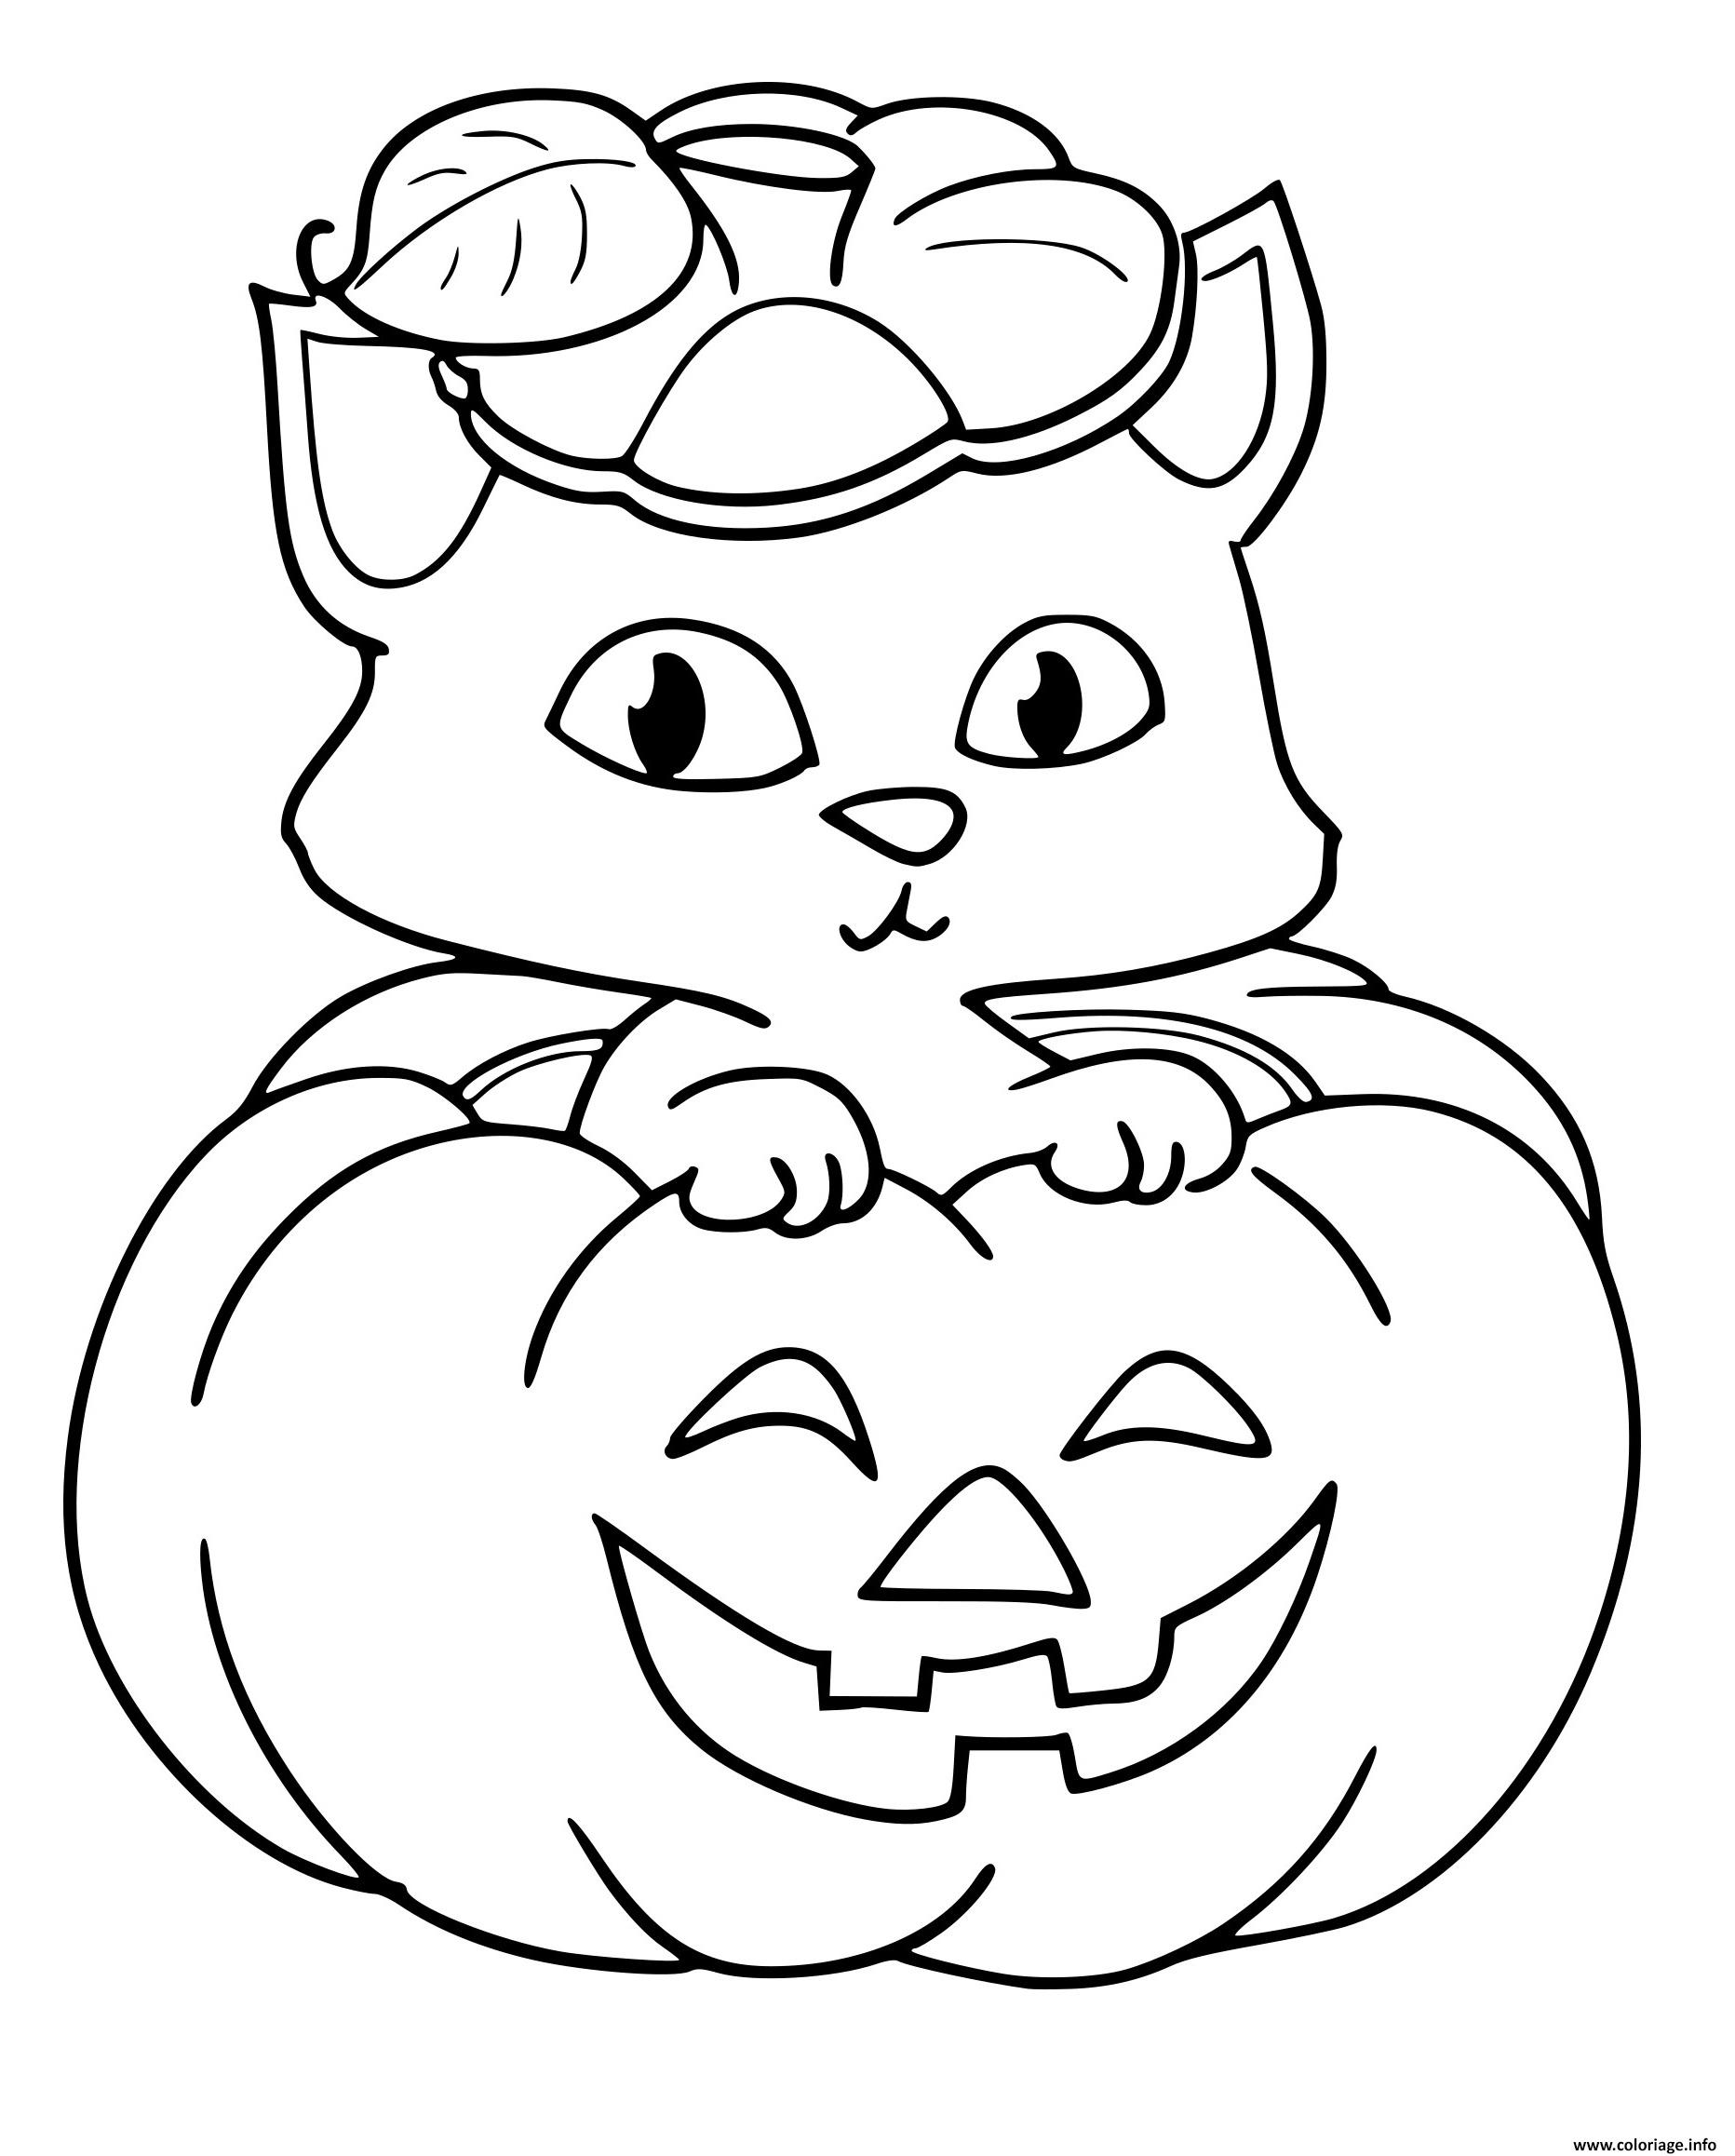 Coloriage citrouille chat halloween - Coloriage de chat ...